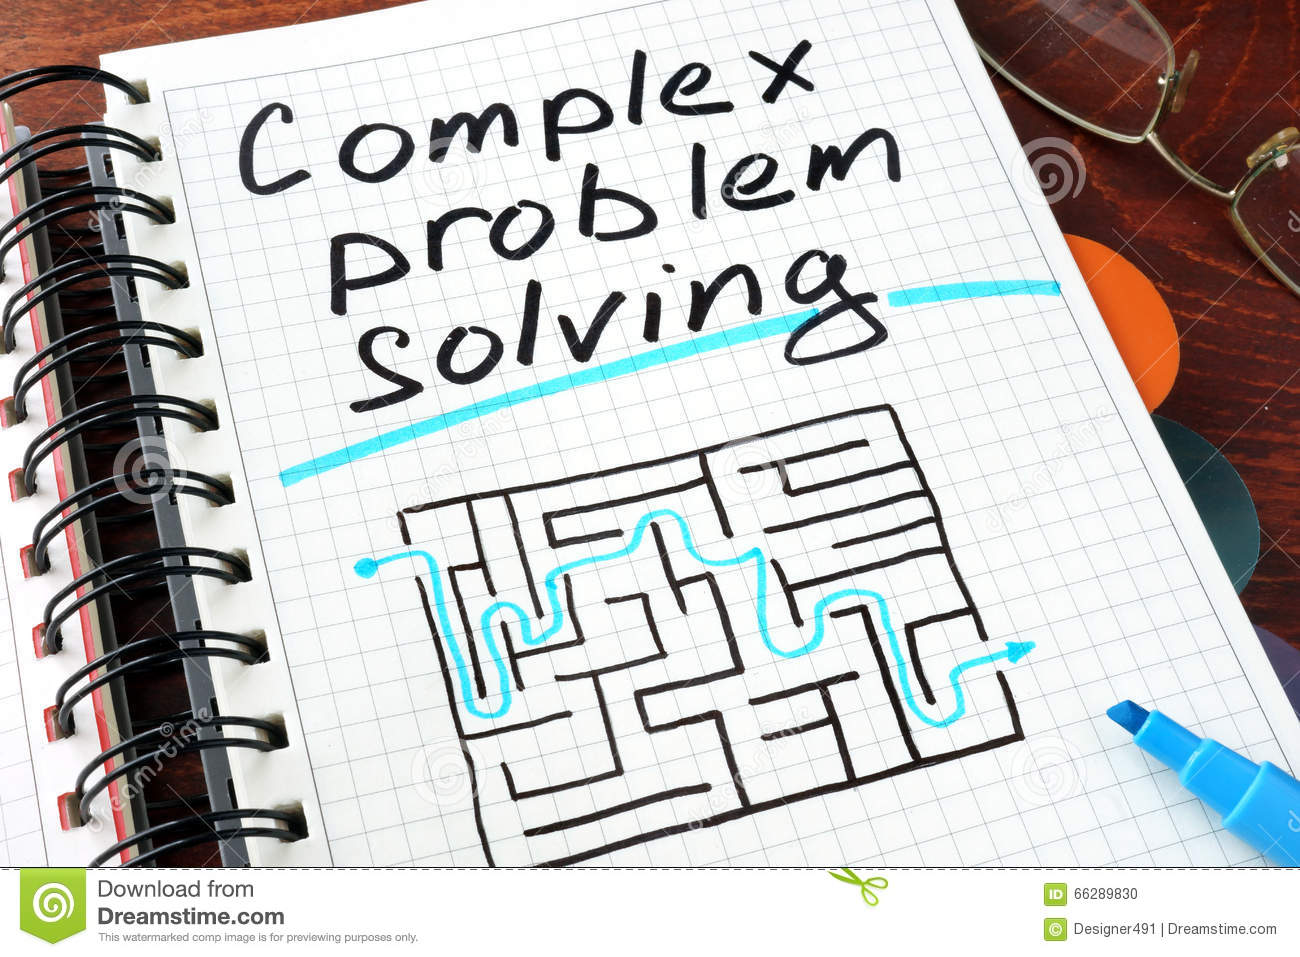 What is complex problem solving